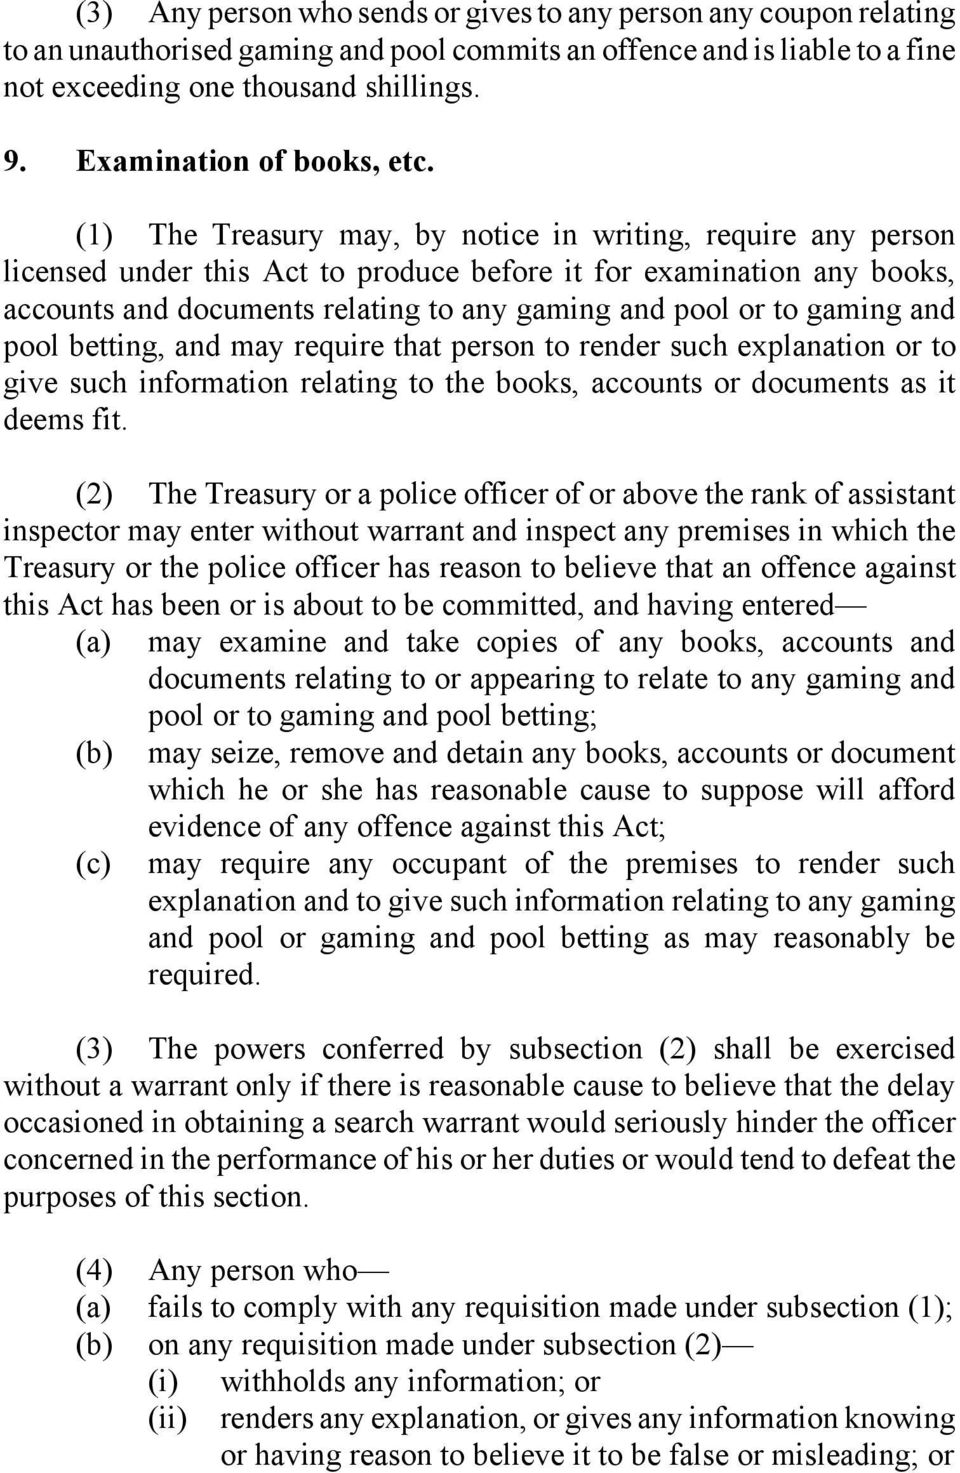 (1) The Treasury may, by notice in writing, require any person licensed under this Act to produce before it for examination any books, accounts and documents relating to any gaming and pool or to